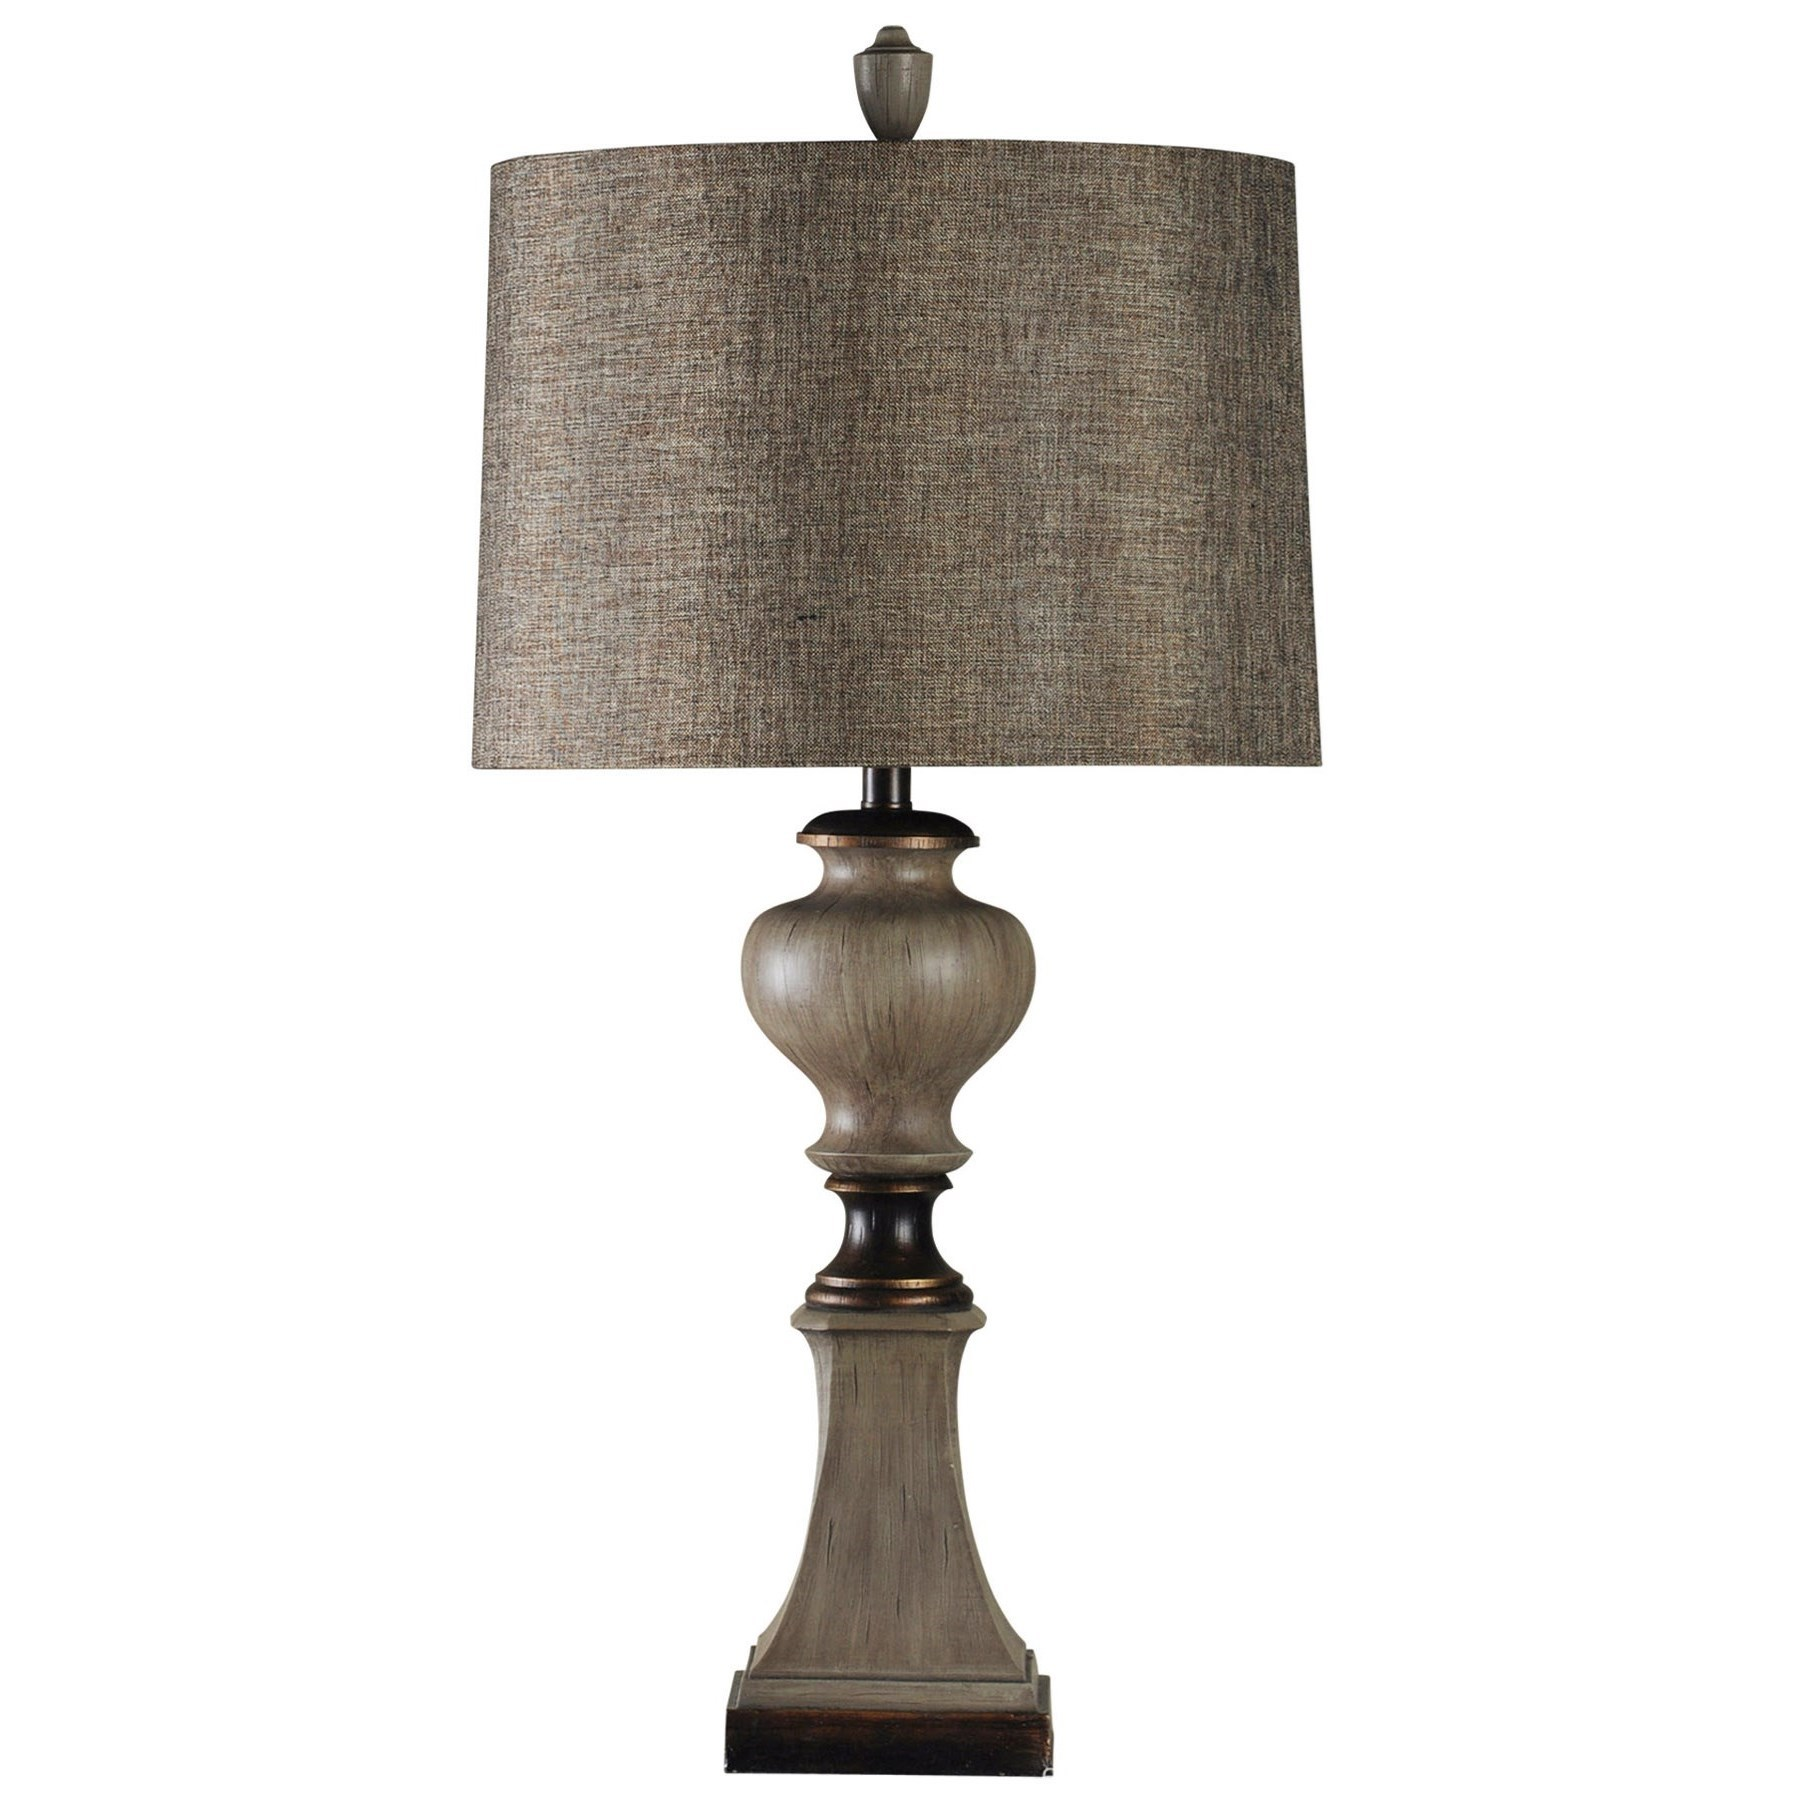 Lamps 35 Inch Transitional Lamp by StyleCraft at Alison Craig Home Furnishings